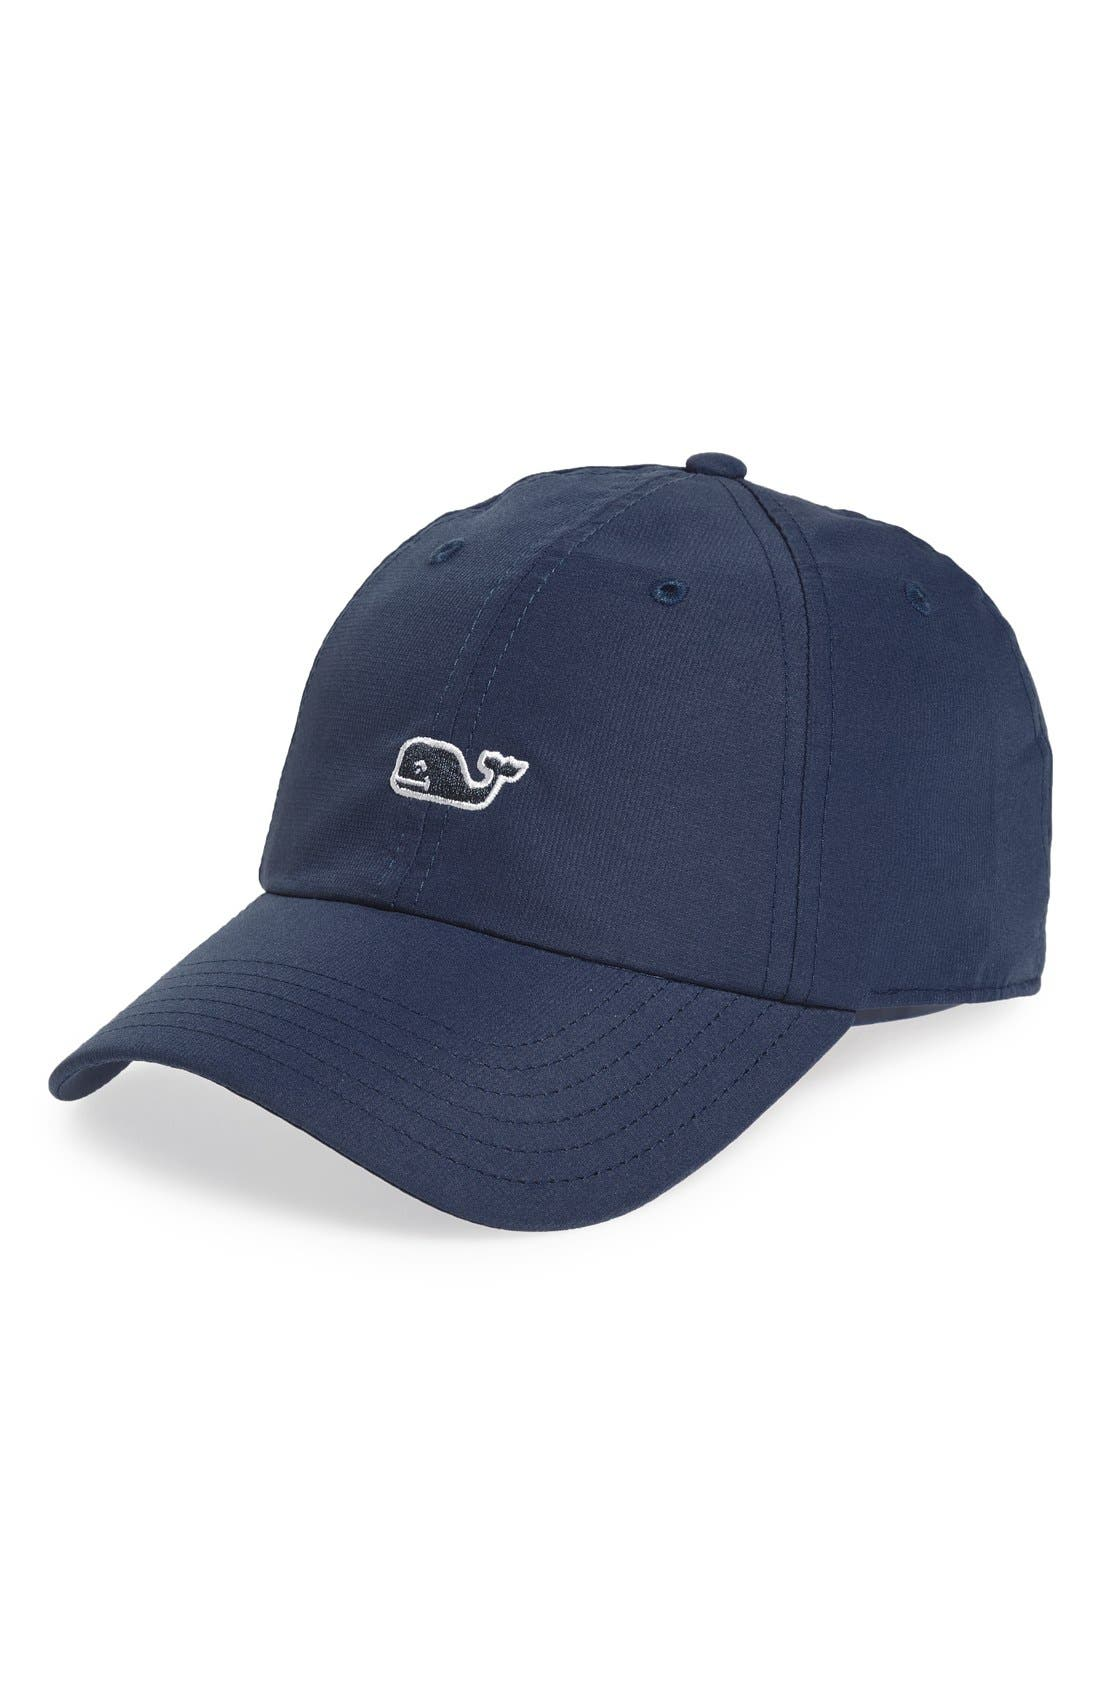 vineyard vines Whale Performance Baseball Cap